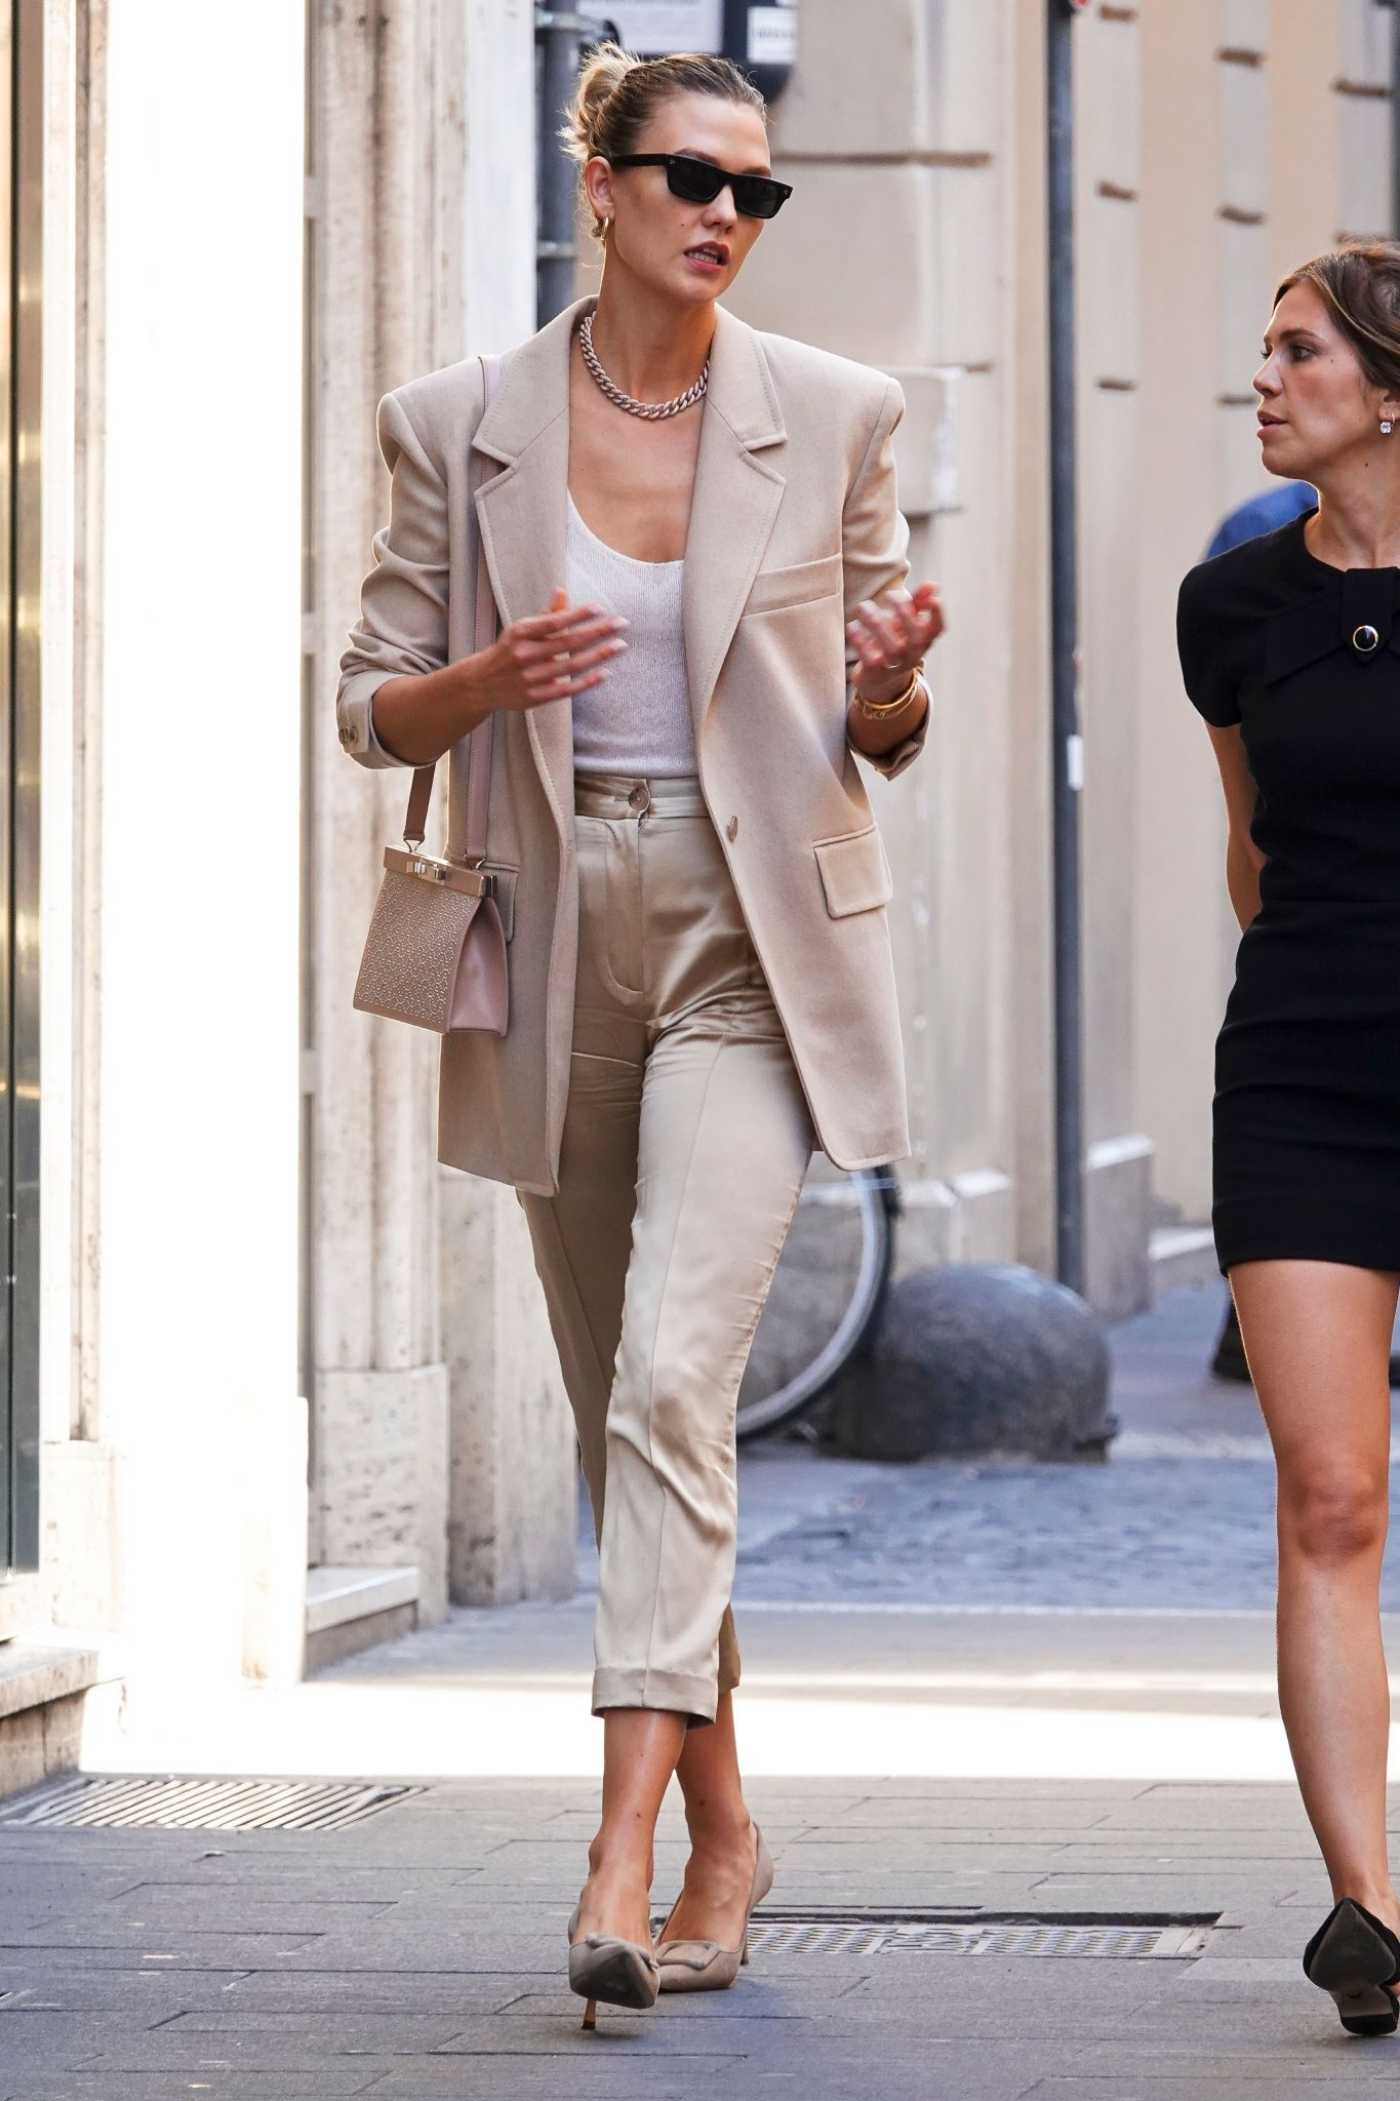 Karlie Kloss in a Beige Suit Was Seen Out in Rome 09/20/2019